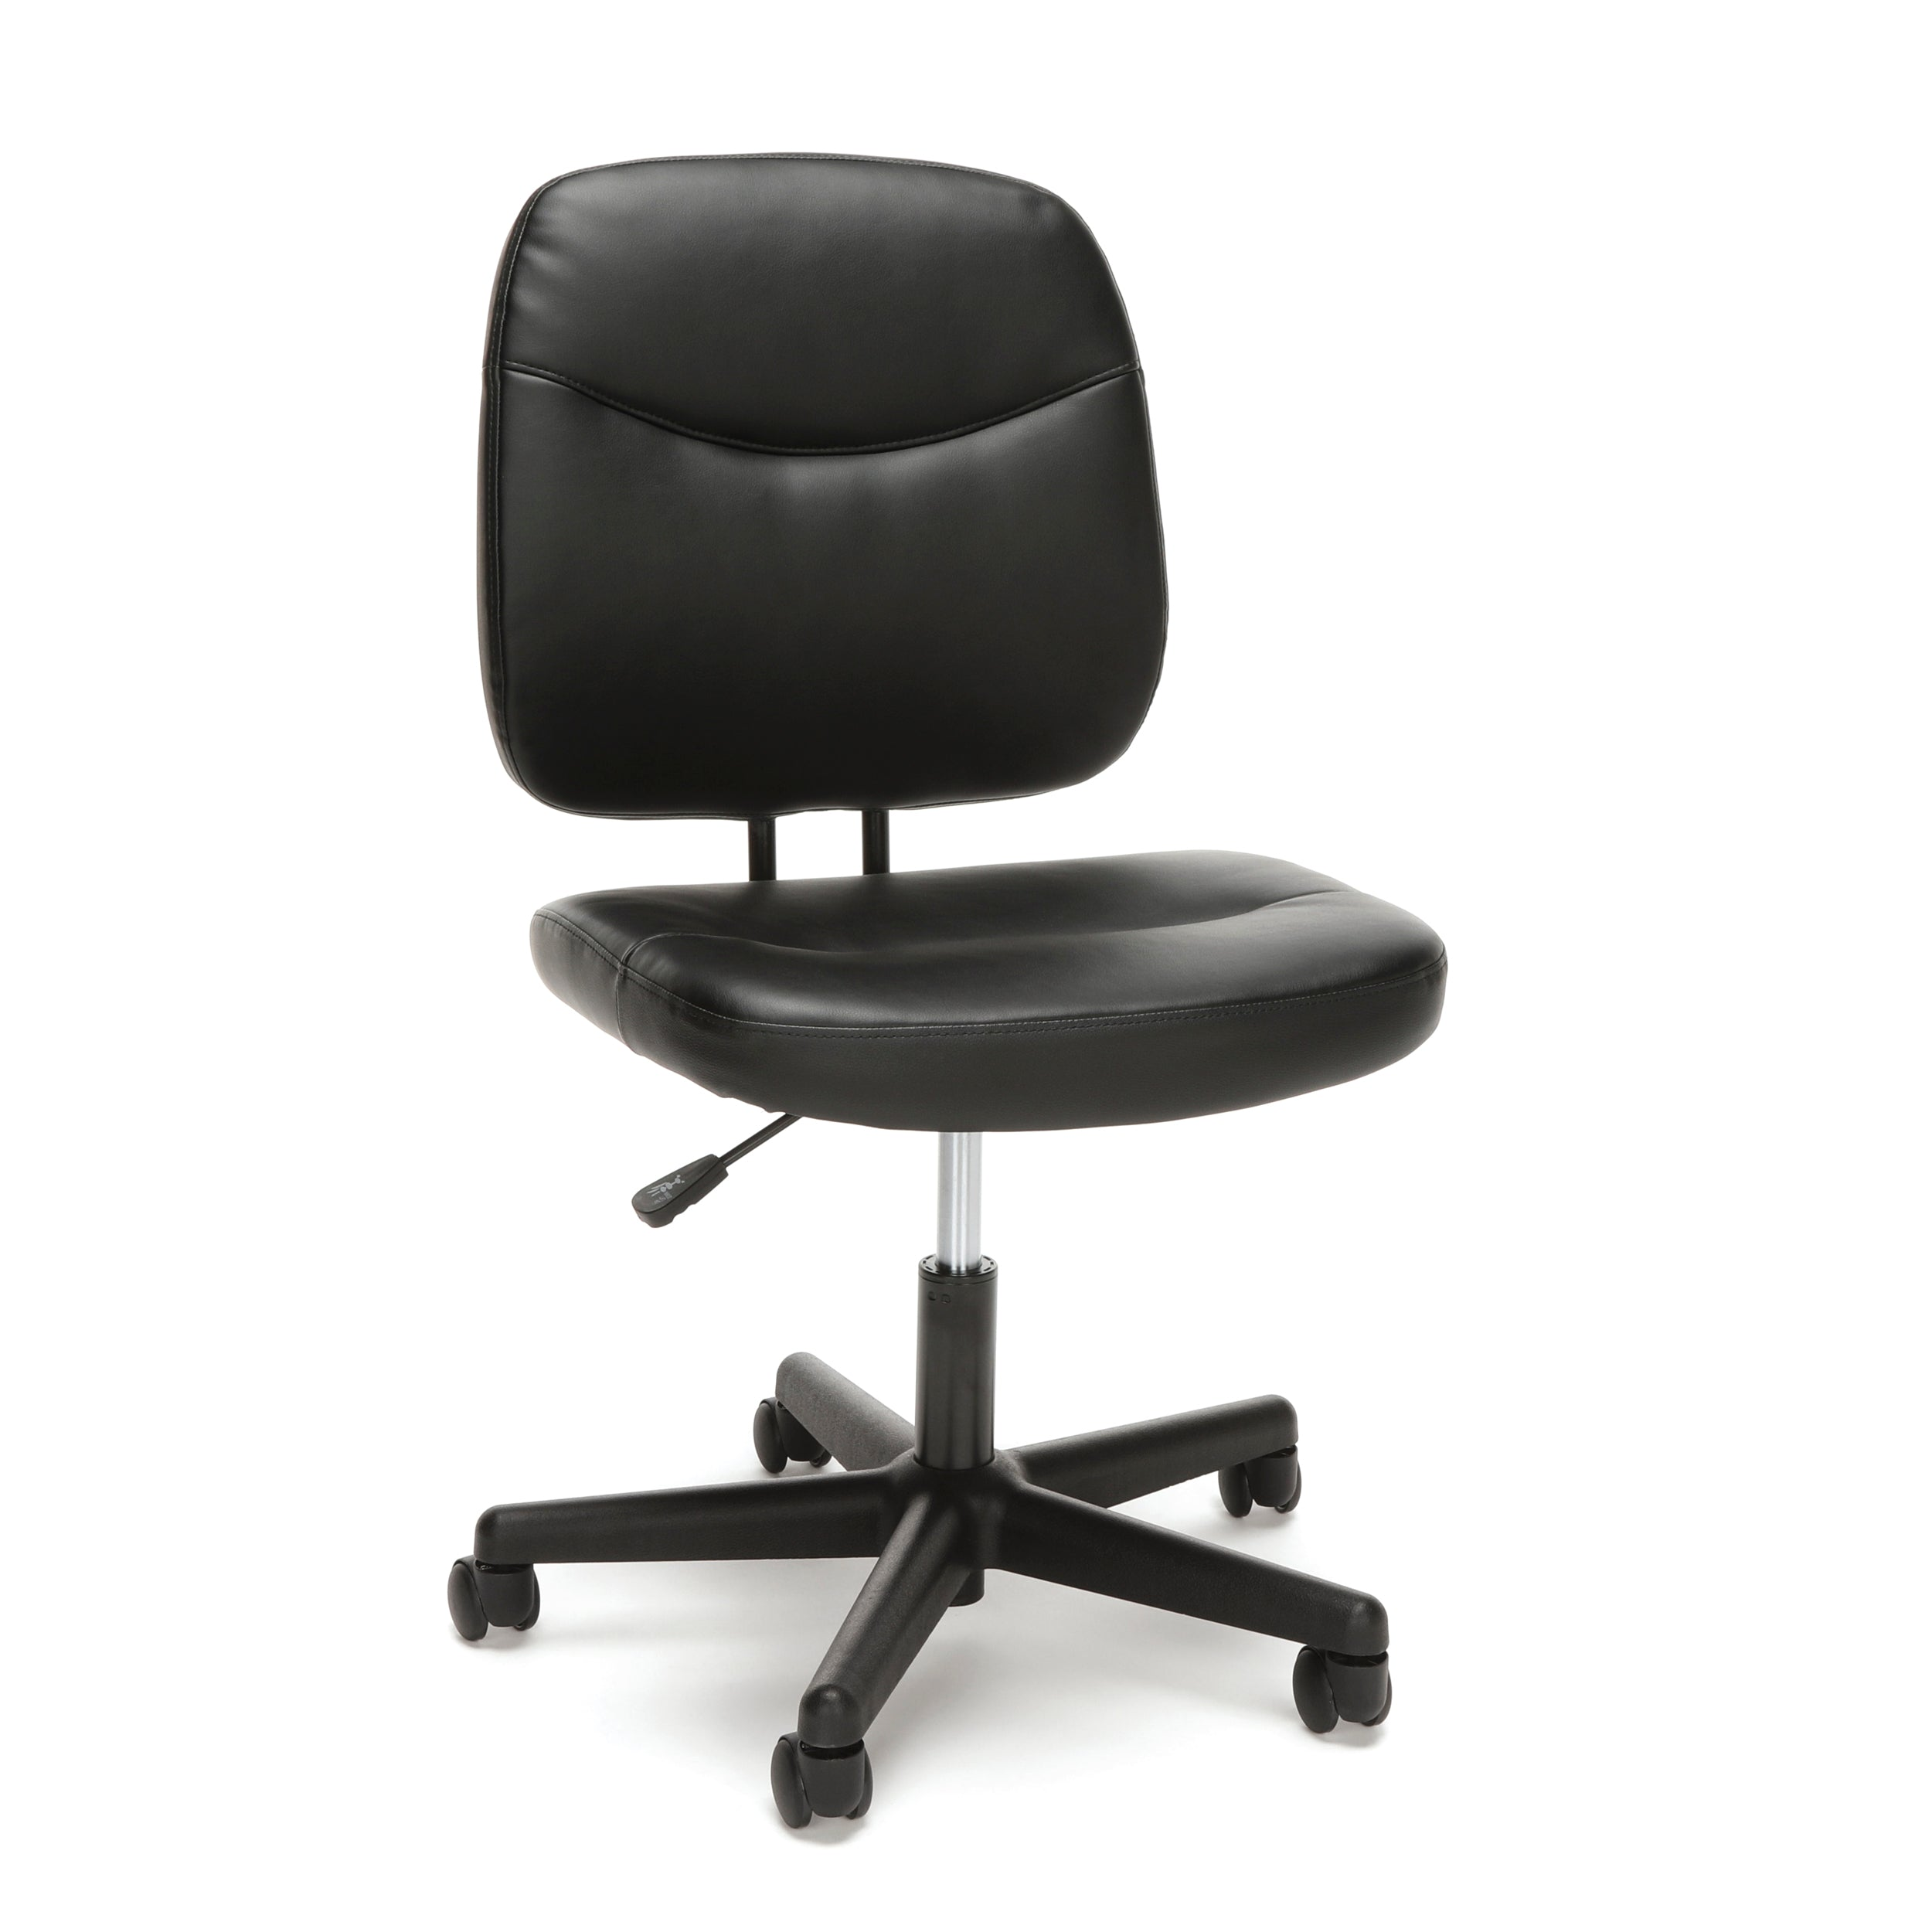 Model ESS-6005 Essentials Armless Leather Desk Chair